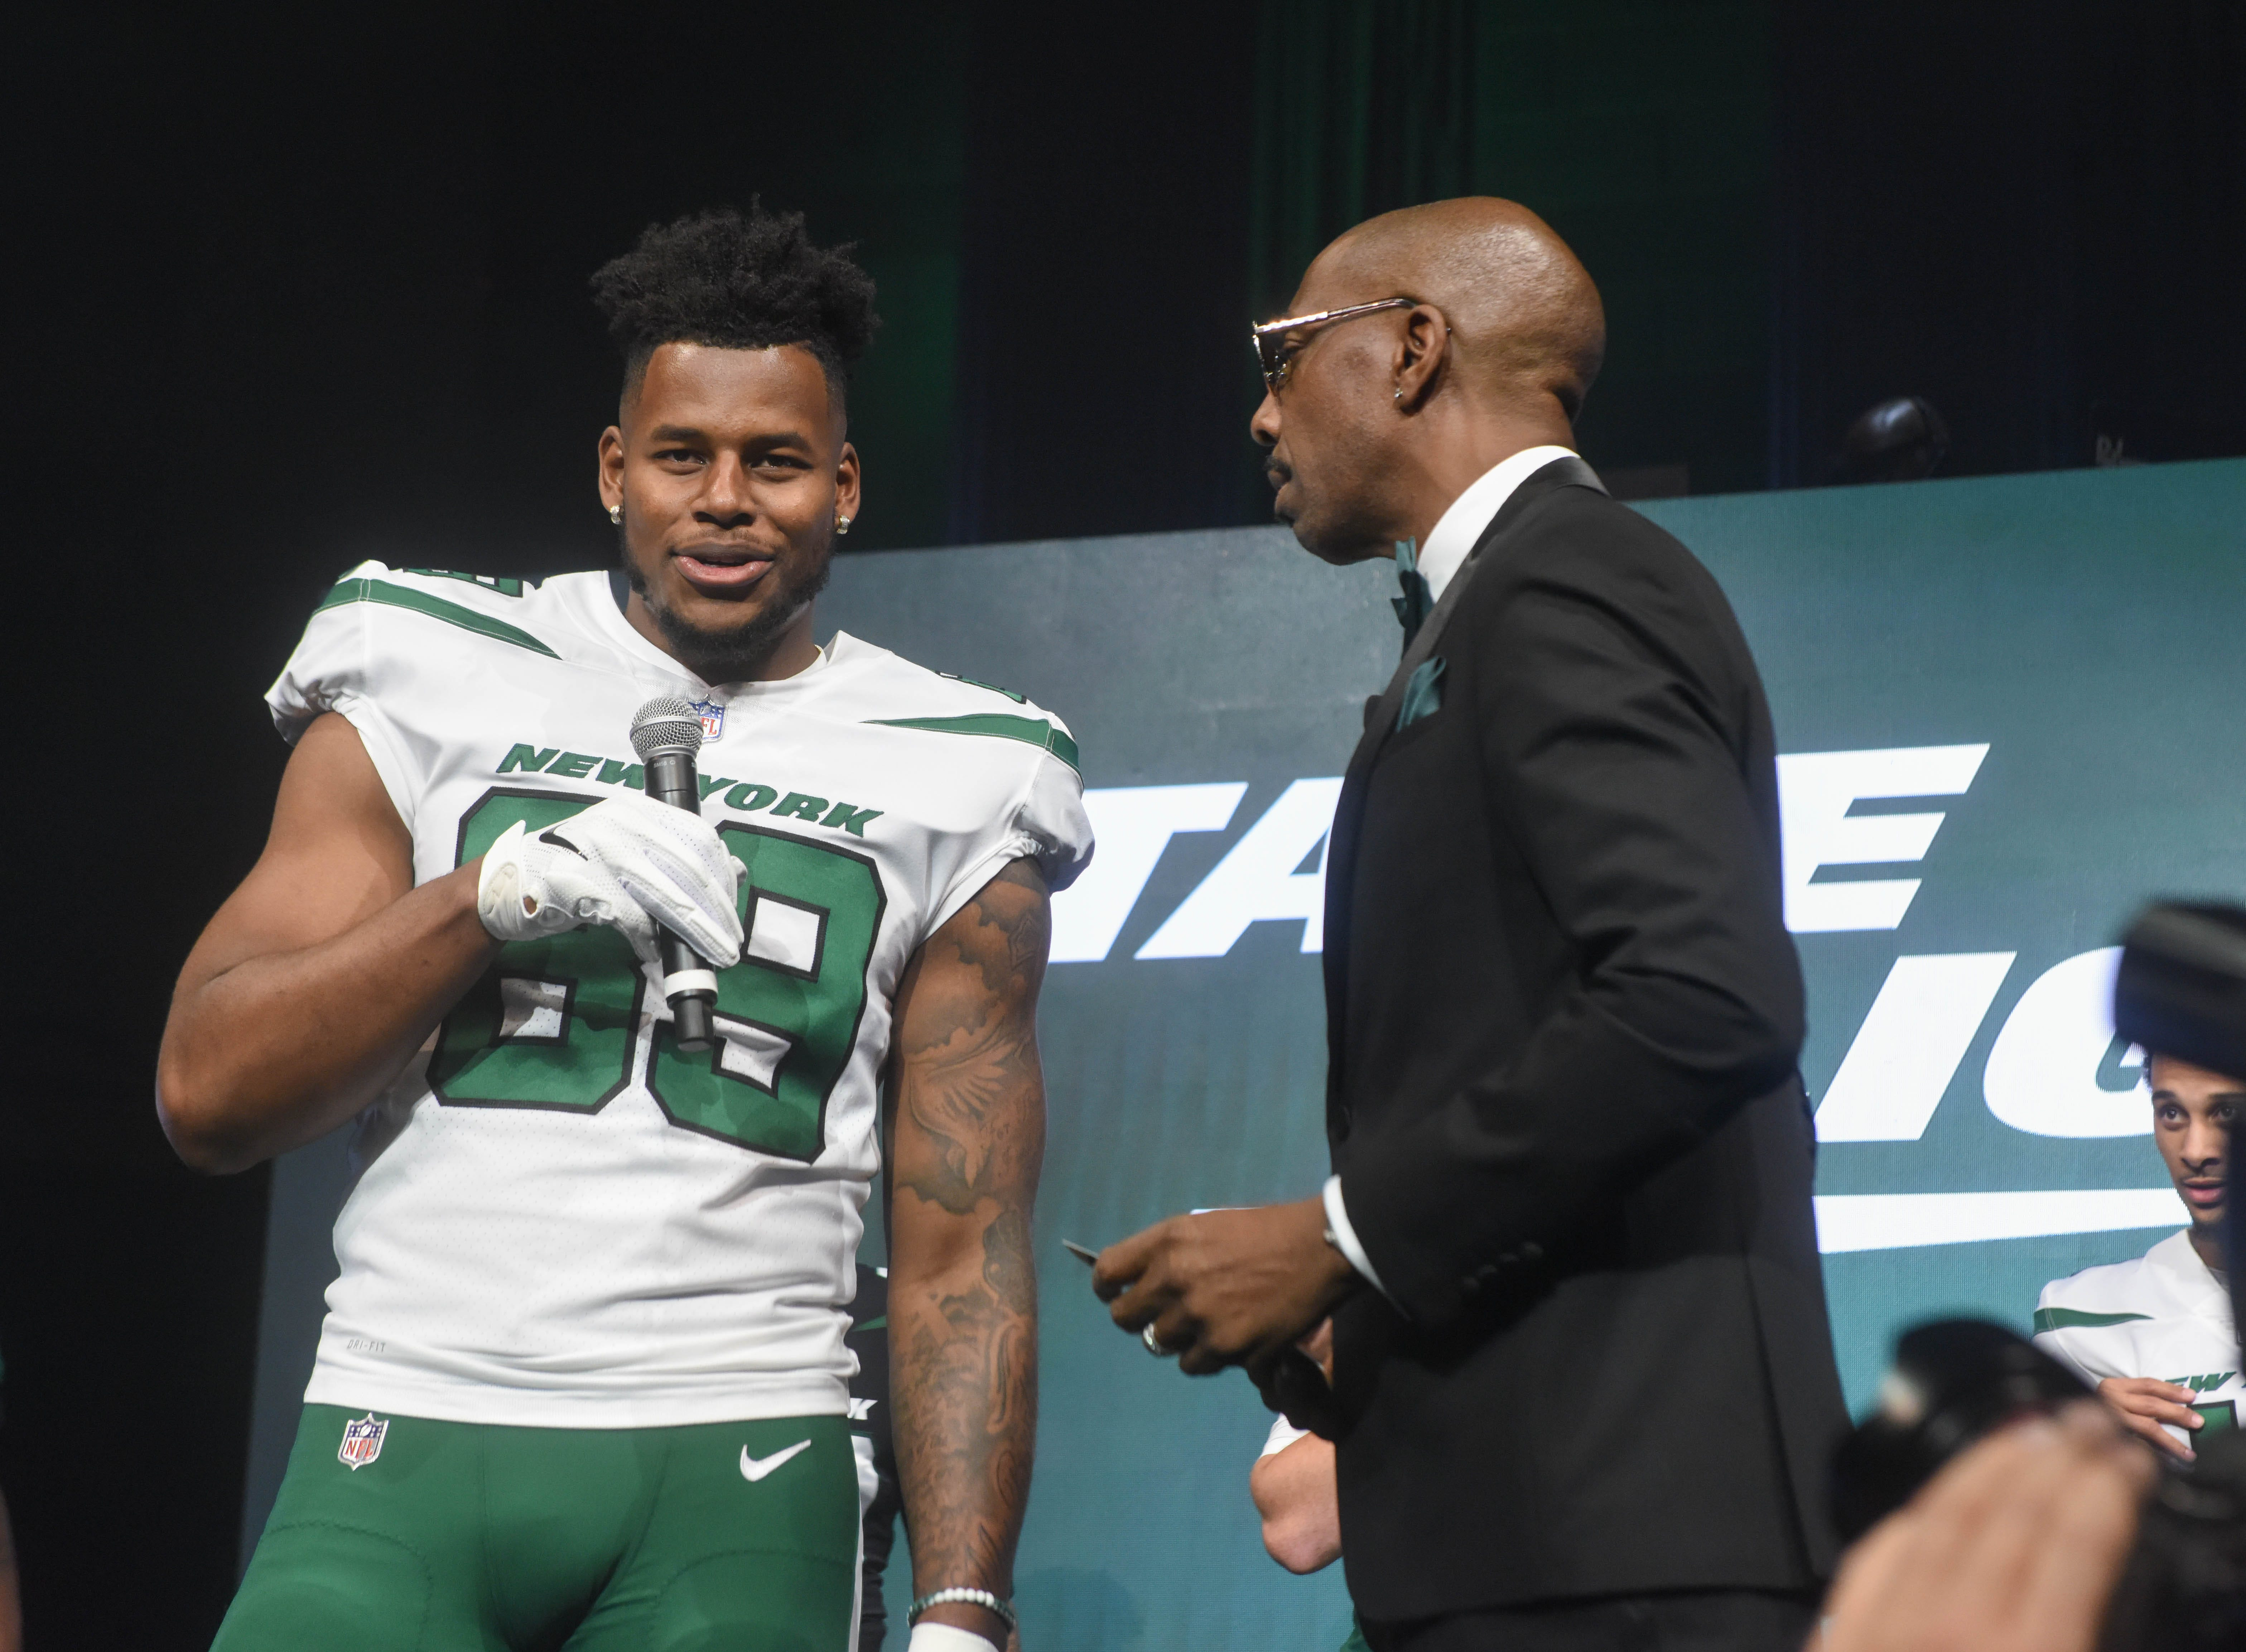 Chris Herndon (NY Jets) and J. B. Smoove (Comedian/Event Host).  The NY Jets unveiled their new football uniforms with an event hosted by JB Smoove at Gotham Hall in New York. 04/05/2019